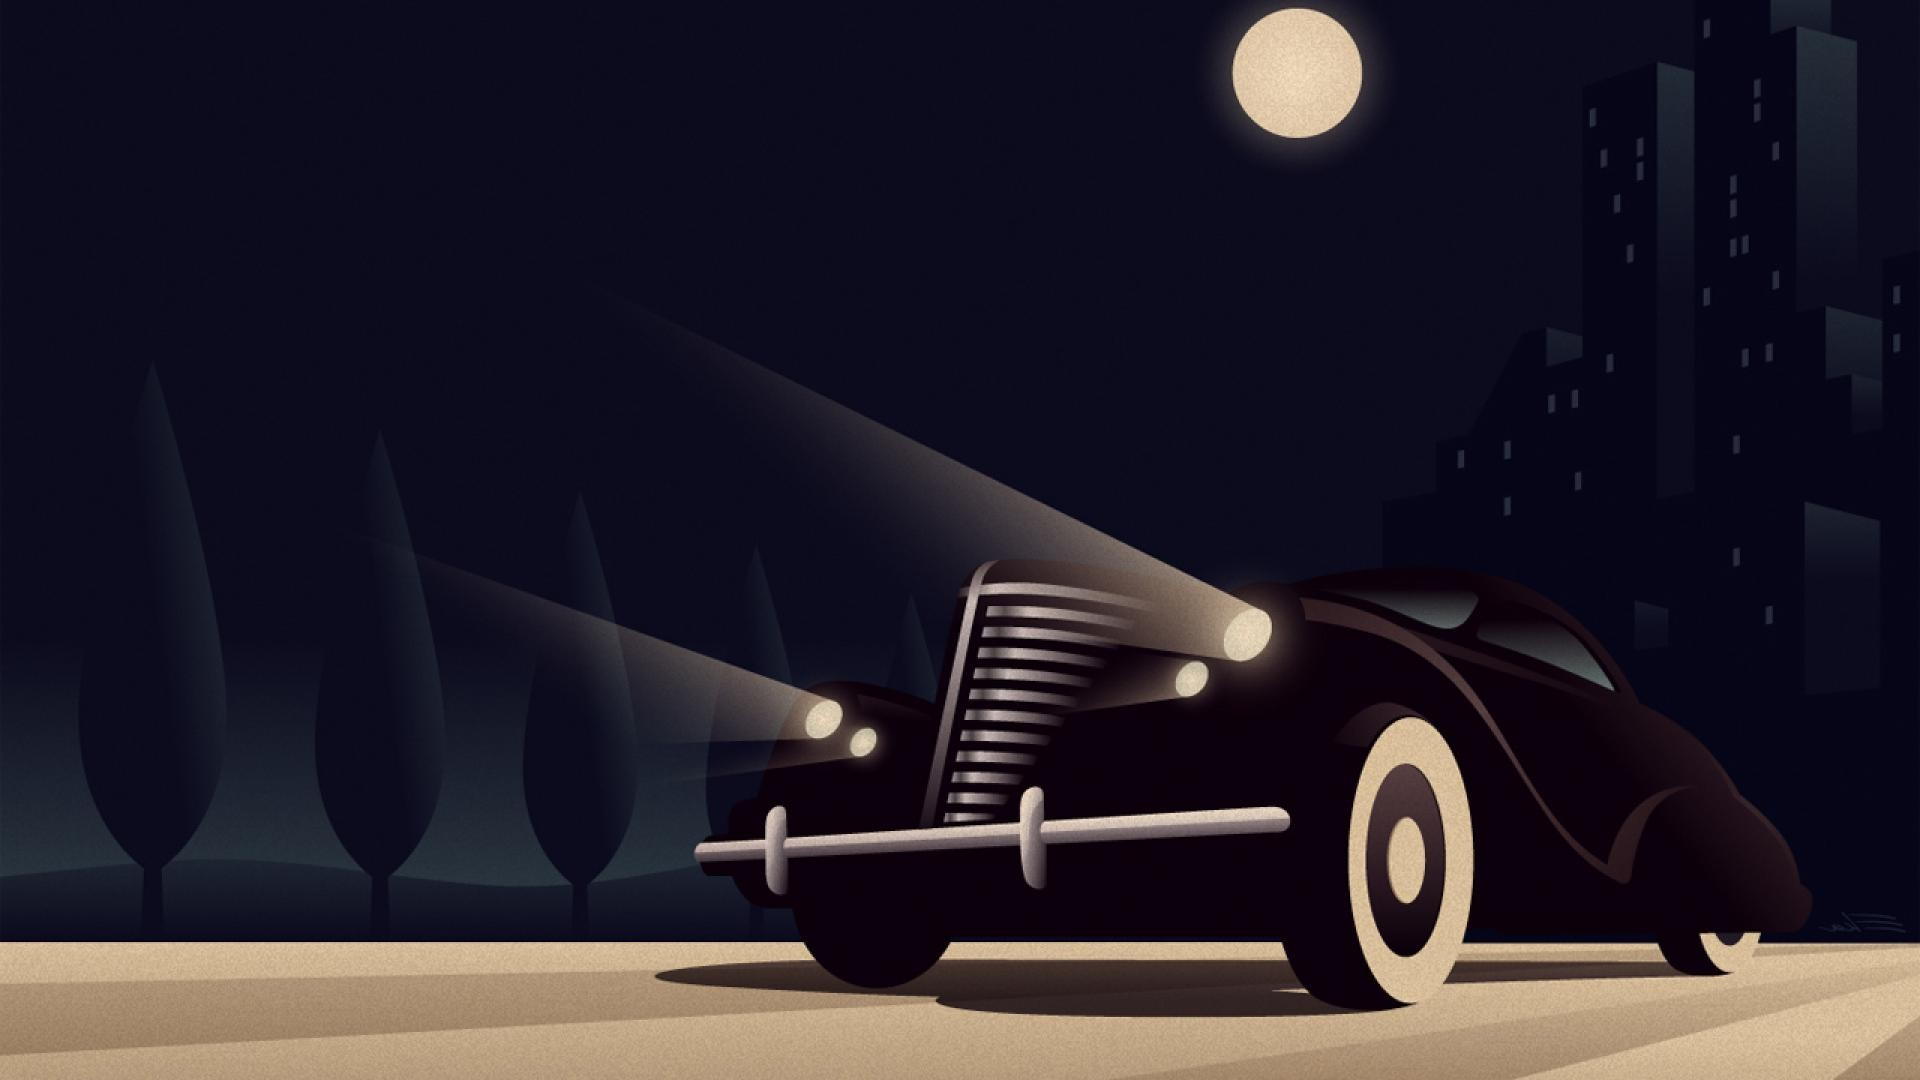 Art Deco wallpaper ·① Download free cool HD wallpapers for ...